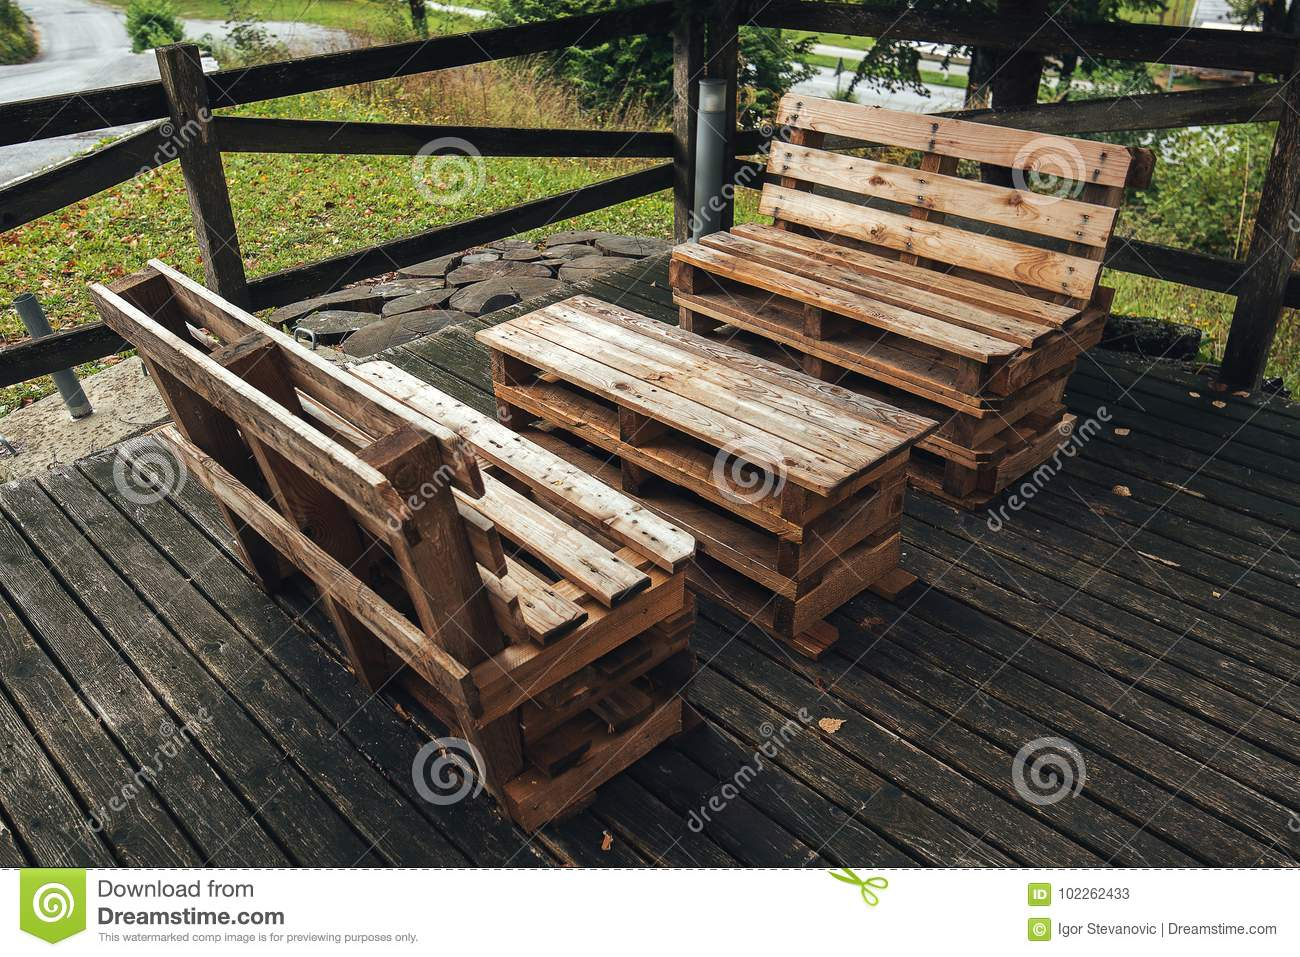 Diy Pallet Furniture Stock Image Image Of Upcycled 102262433